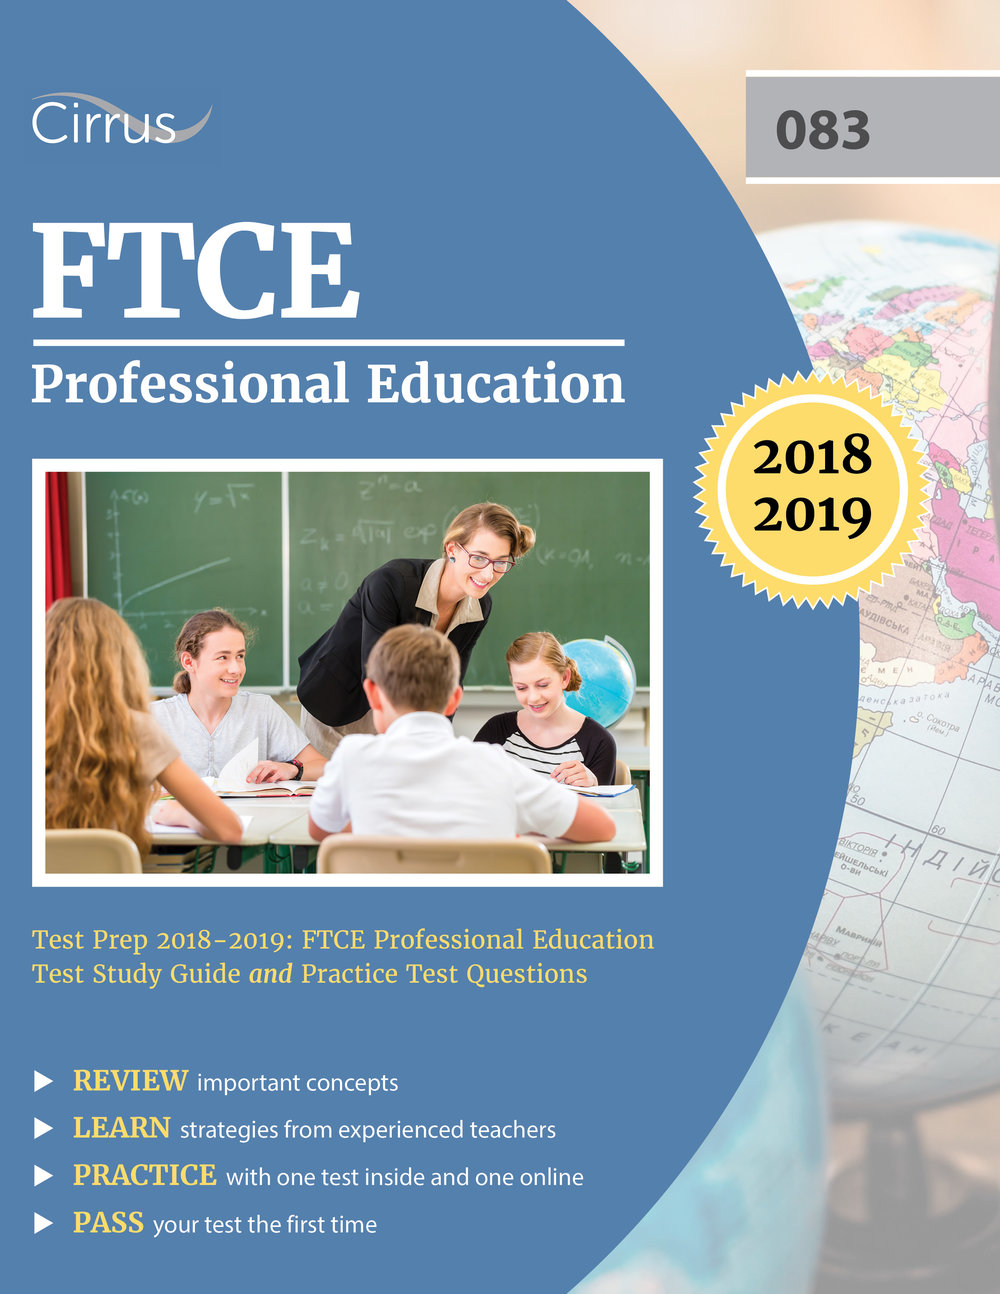 ftce professional education cirrus test prep rh cirrustestprep com FTCE Prep ftce professional education teacher certification study guide test prep